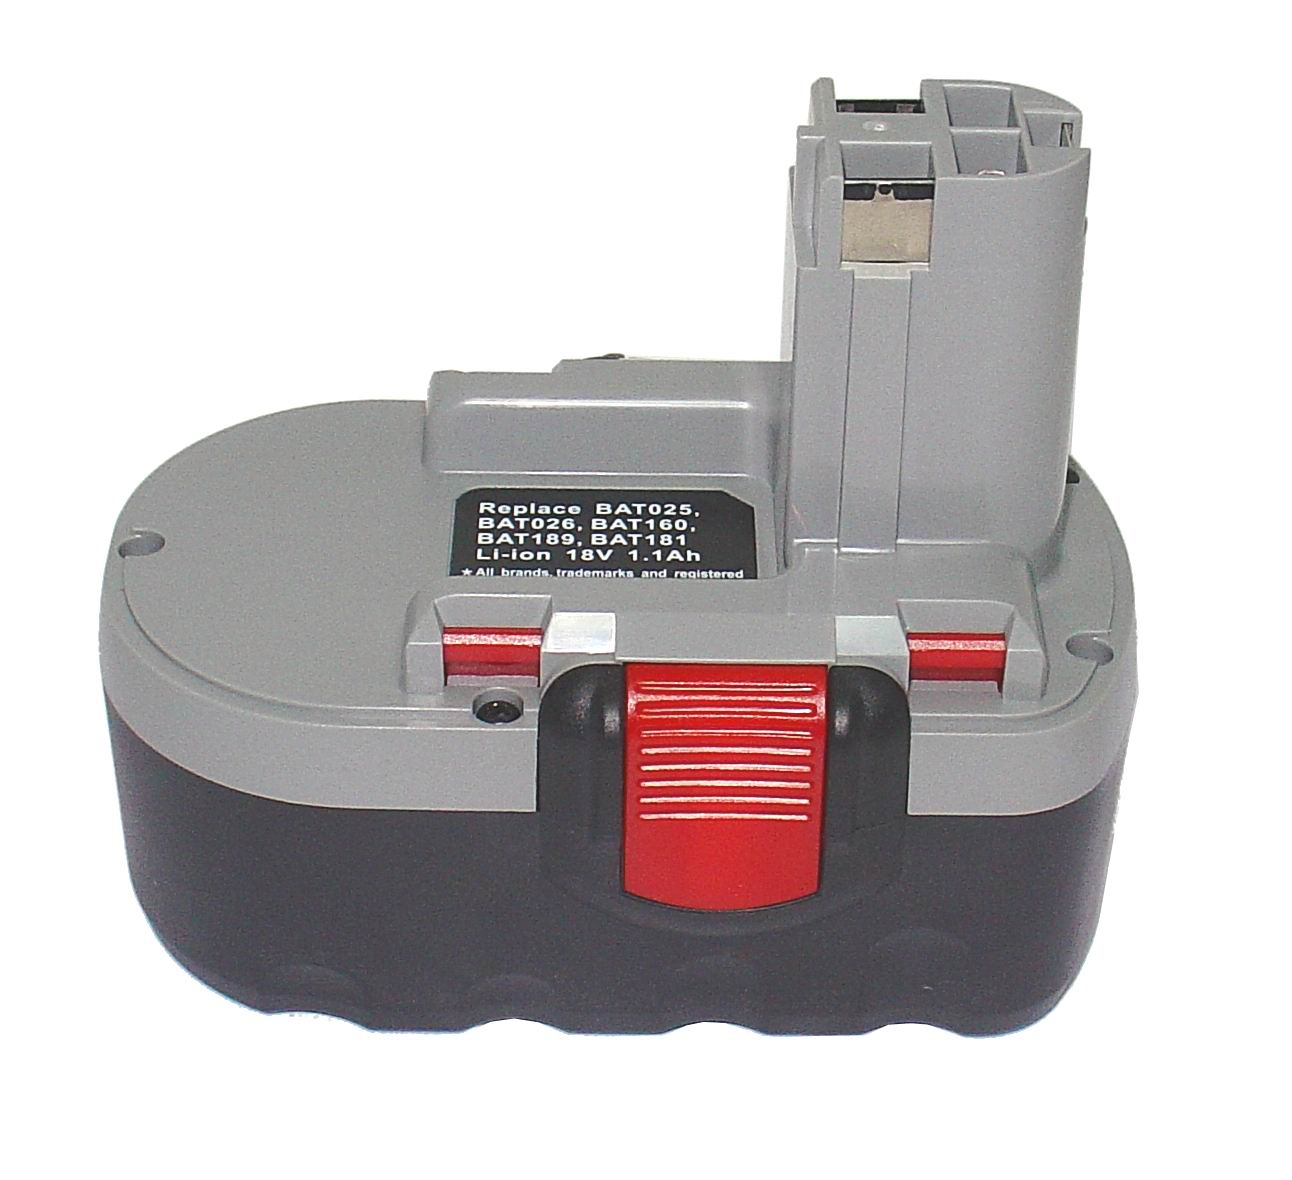 Bosch Gds 18 V Drill Battery Power Tool Battery For Bosch